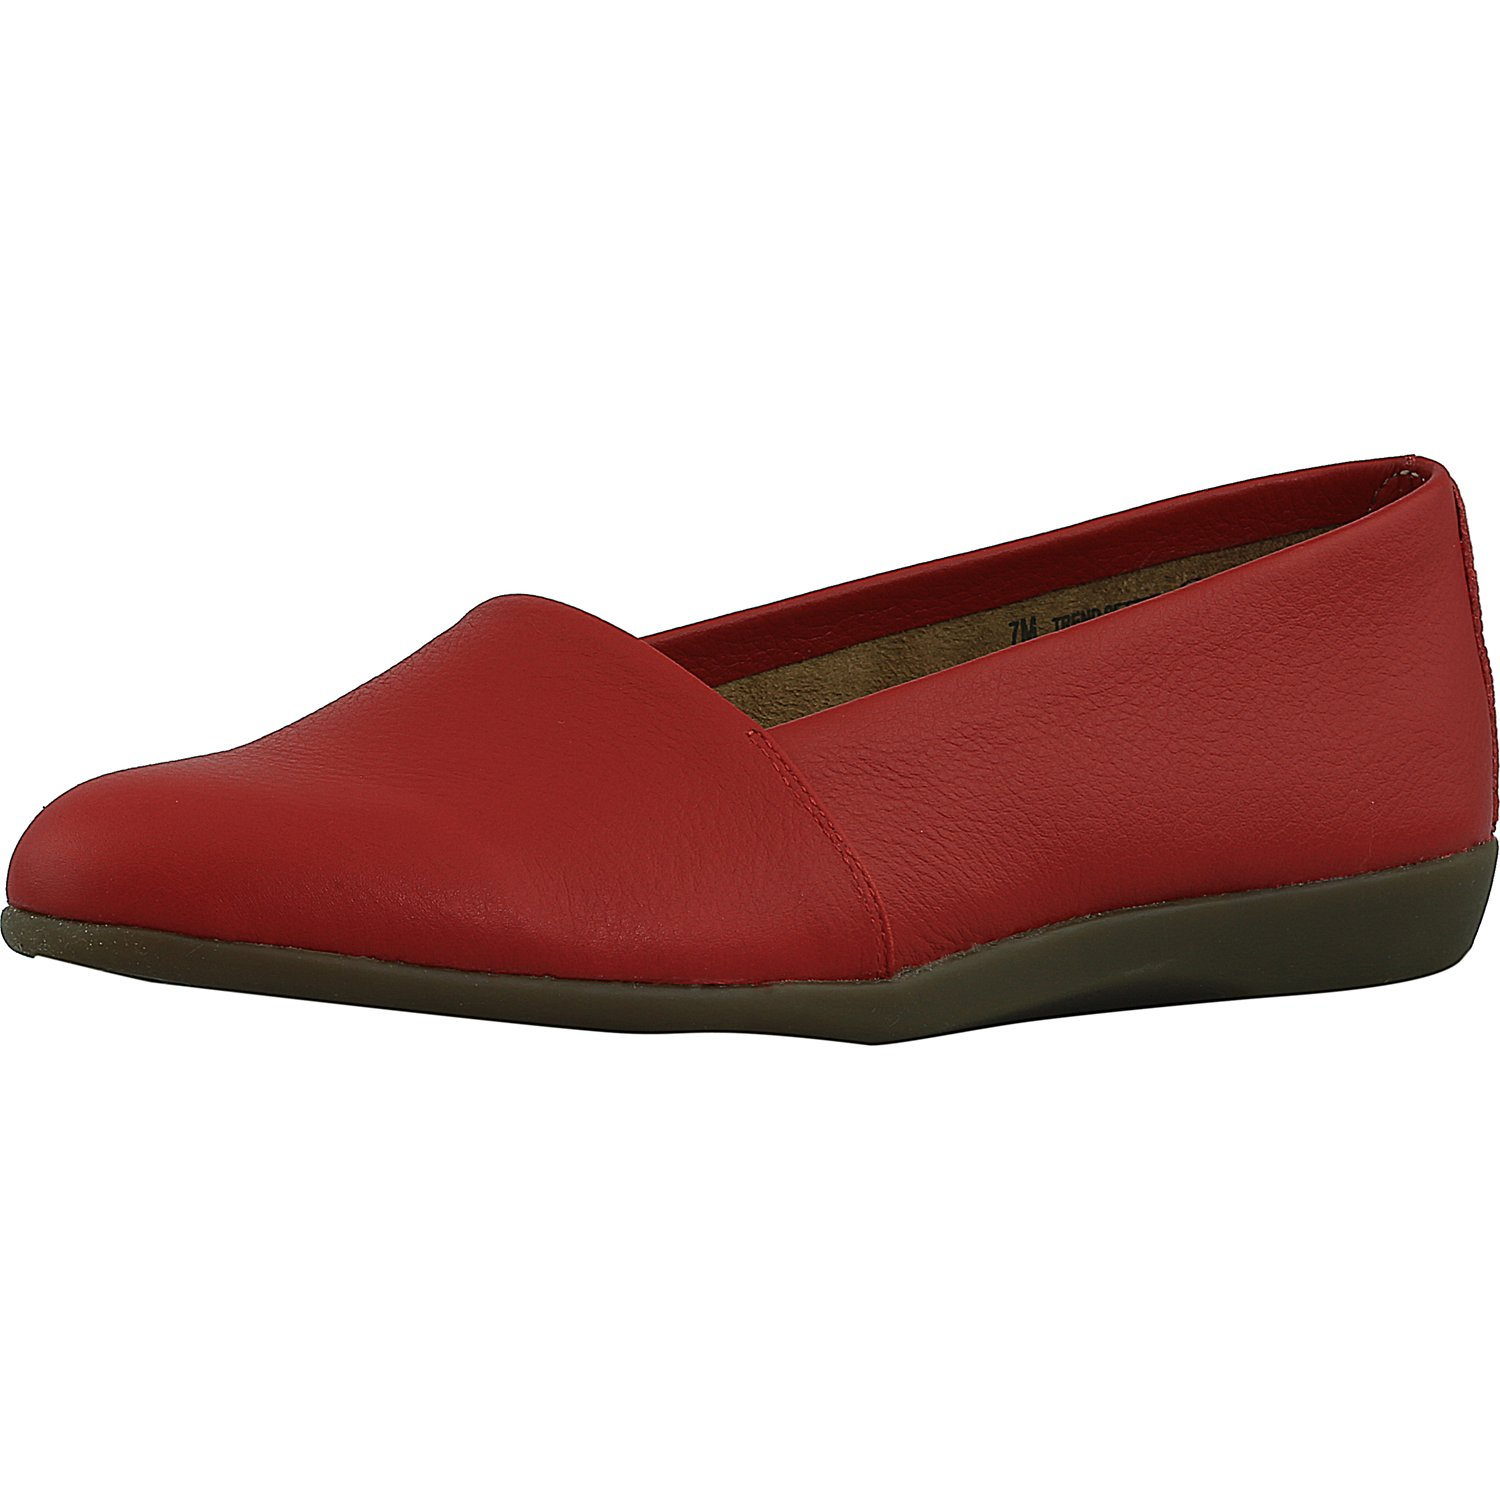 Women's Aerosoles Trend Setter Slip On by